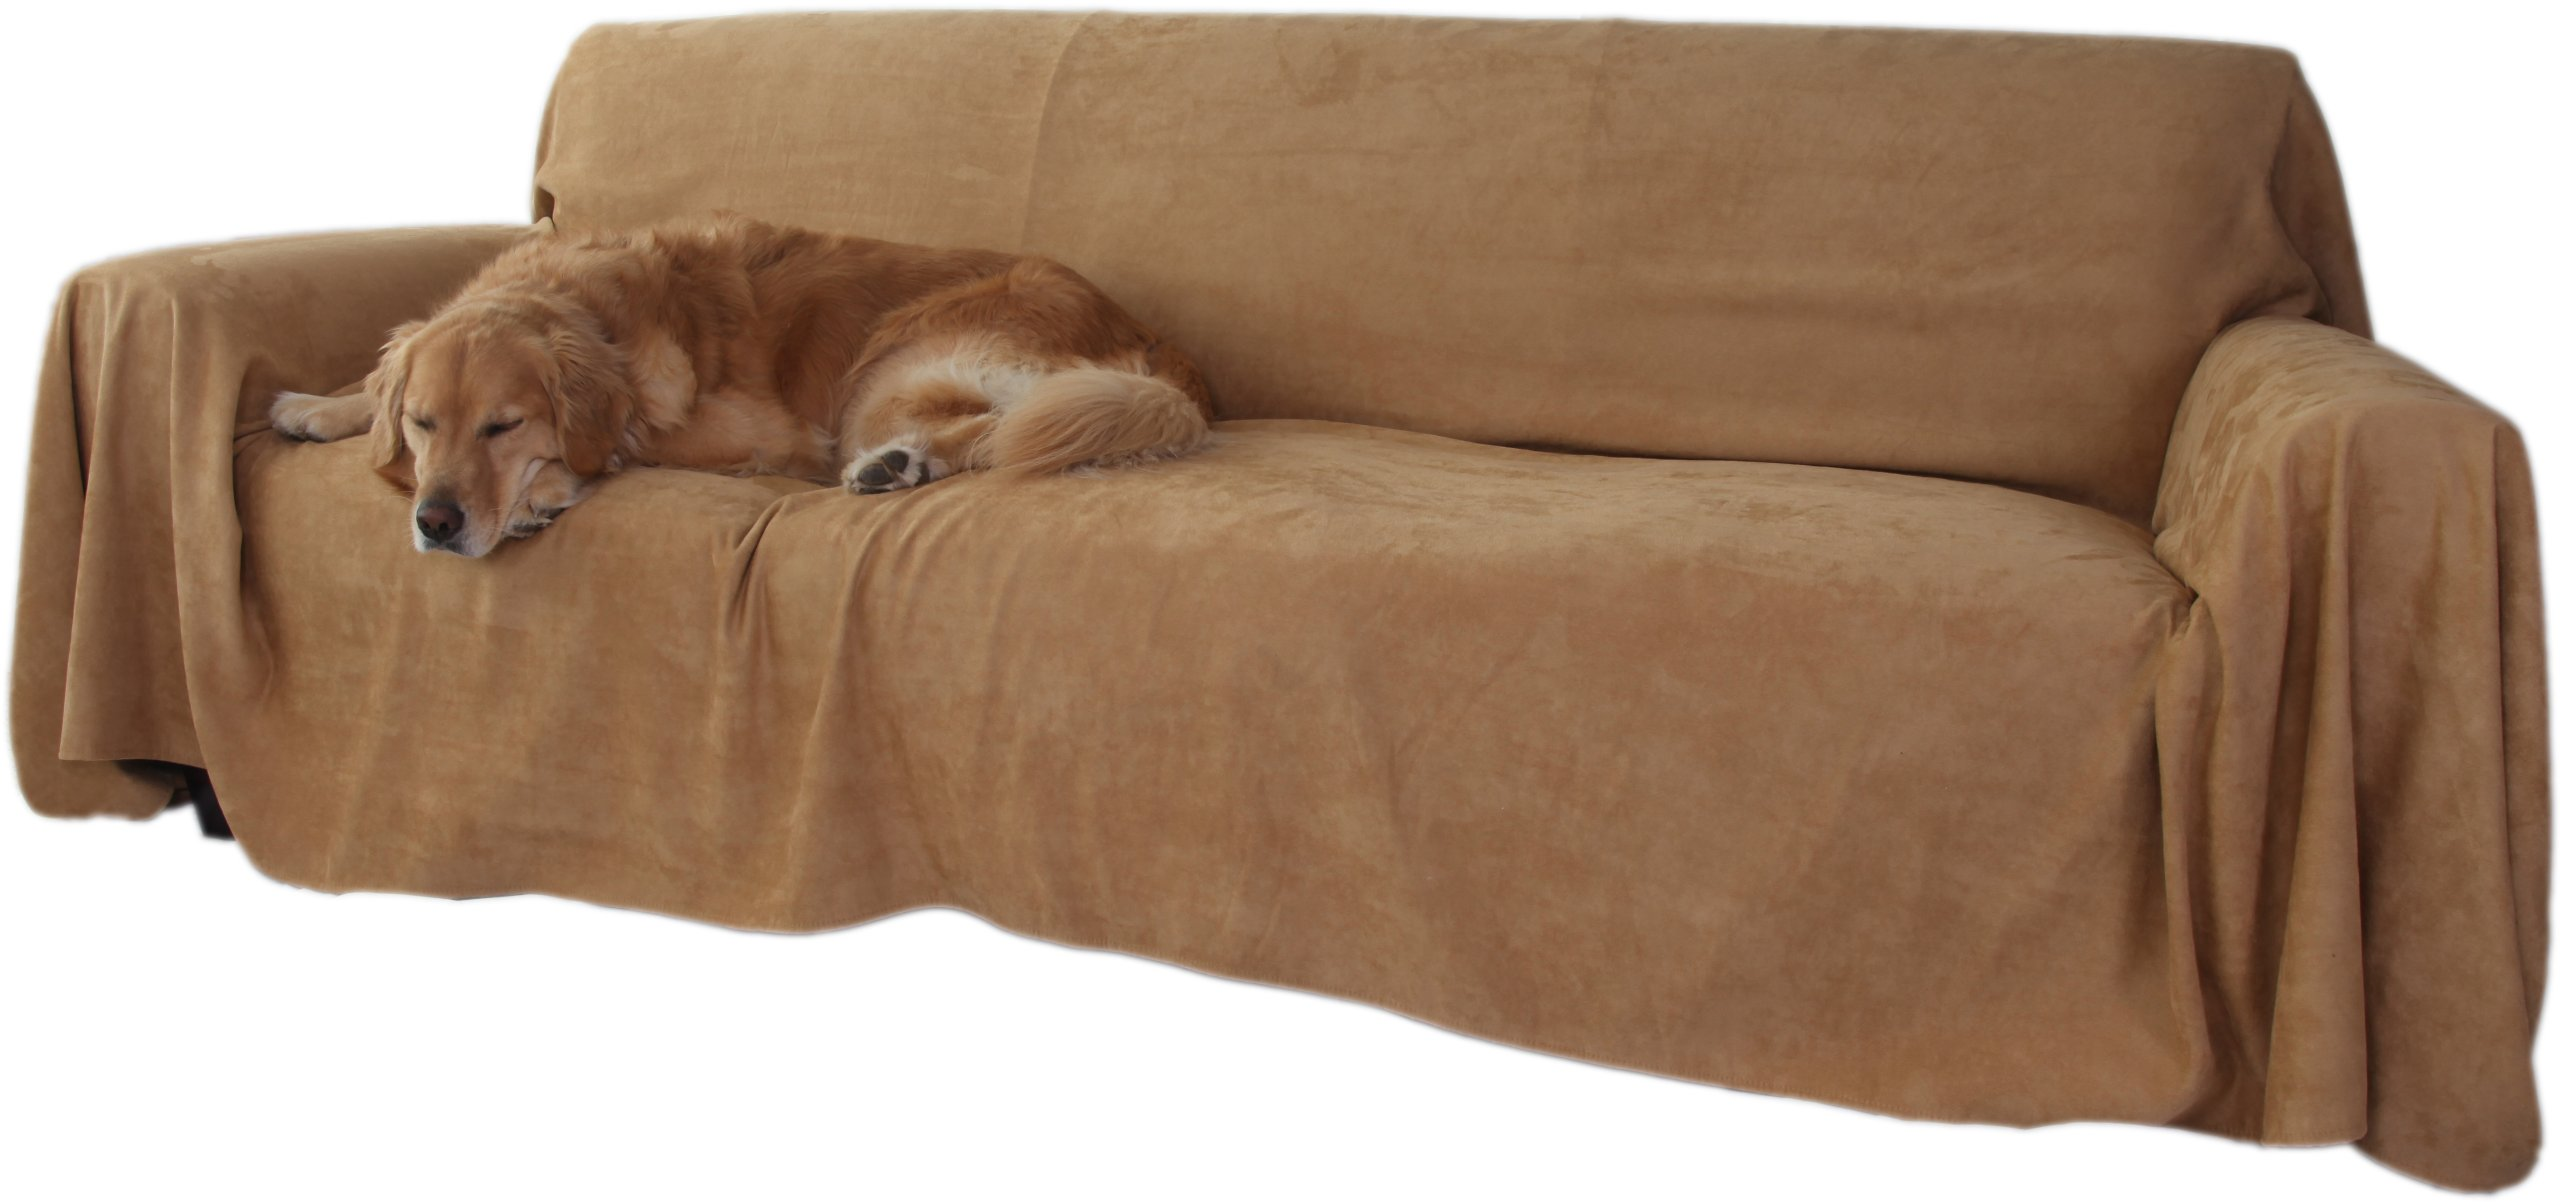 Floppy Ears Design Simple Faux Suede Couch Cover Protector, Tan, Large Three Cushion Couch Size by Floppy Ears Design